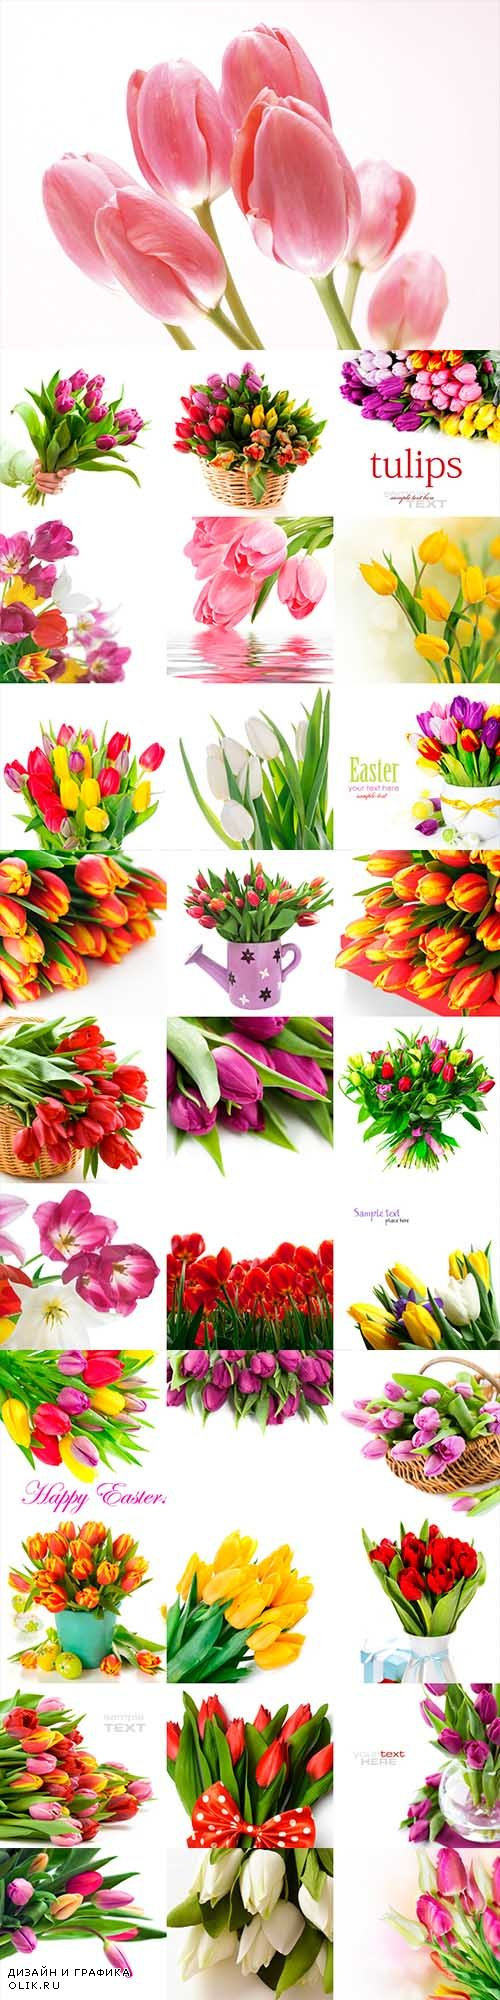 Tulips on white background 110 stock photo